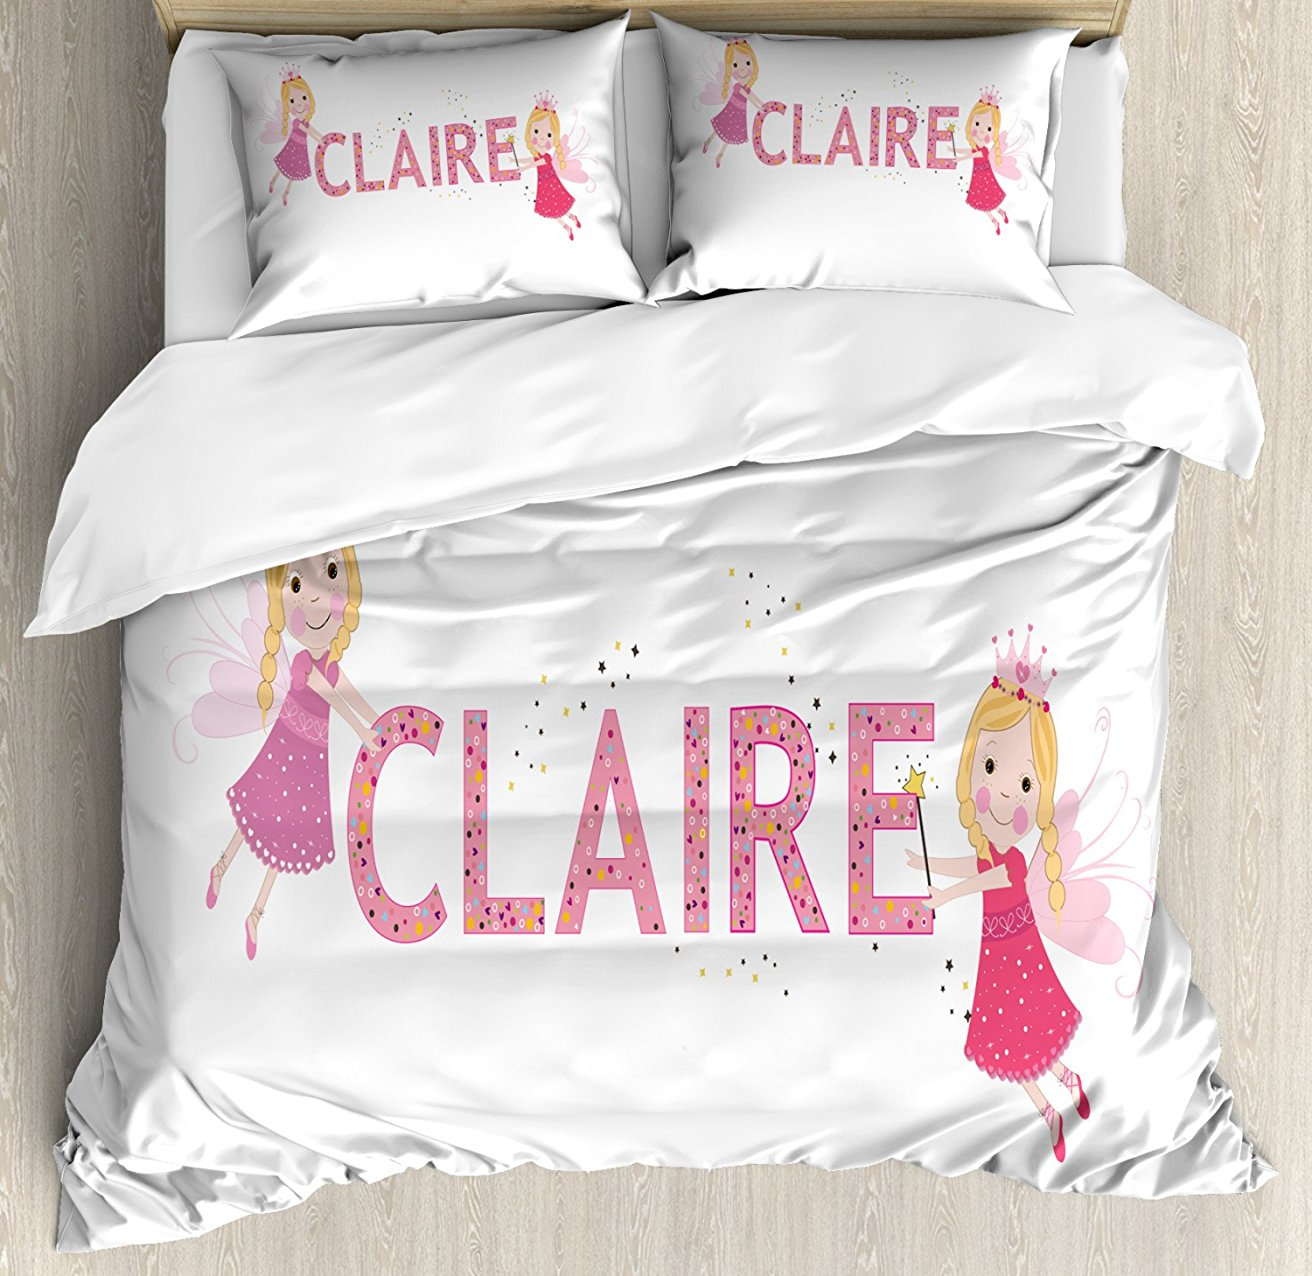 Claire Duvet Cover Set Pastel Toned Colorful Arrangement of Fairy Tale Elements with Magic Wands and Wings 4 Piece Bedding Set